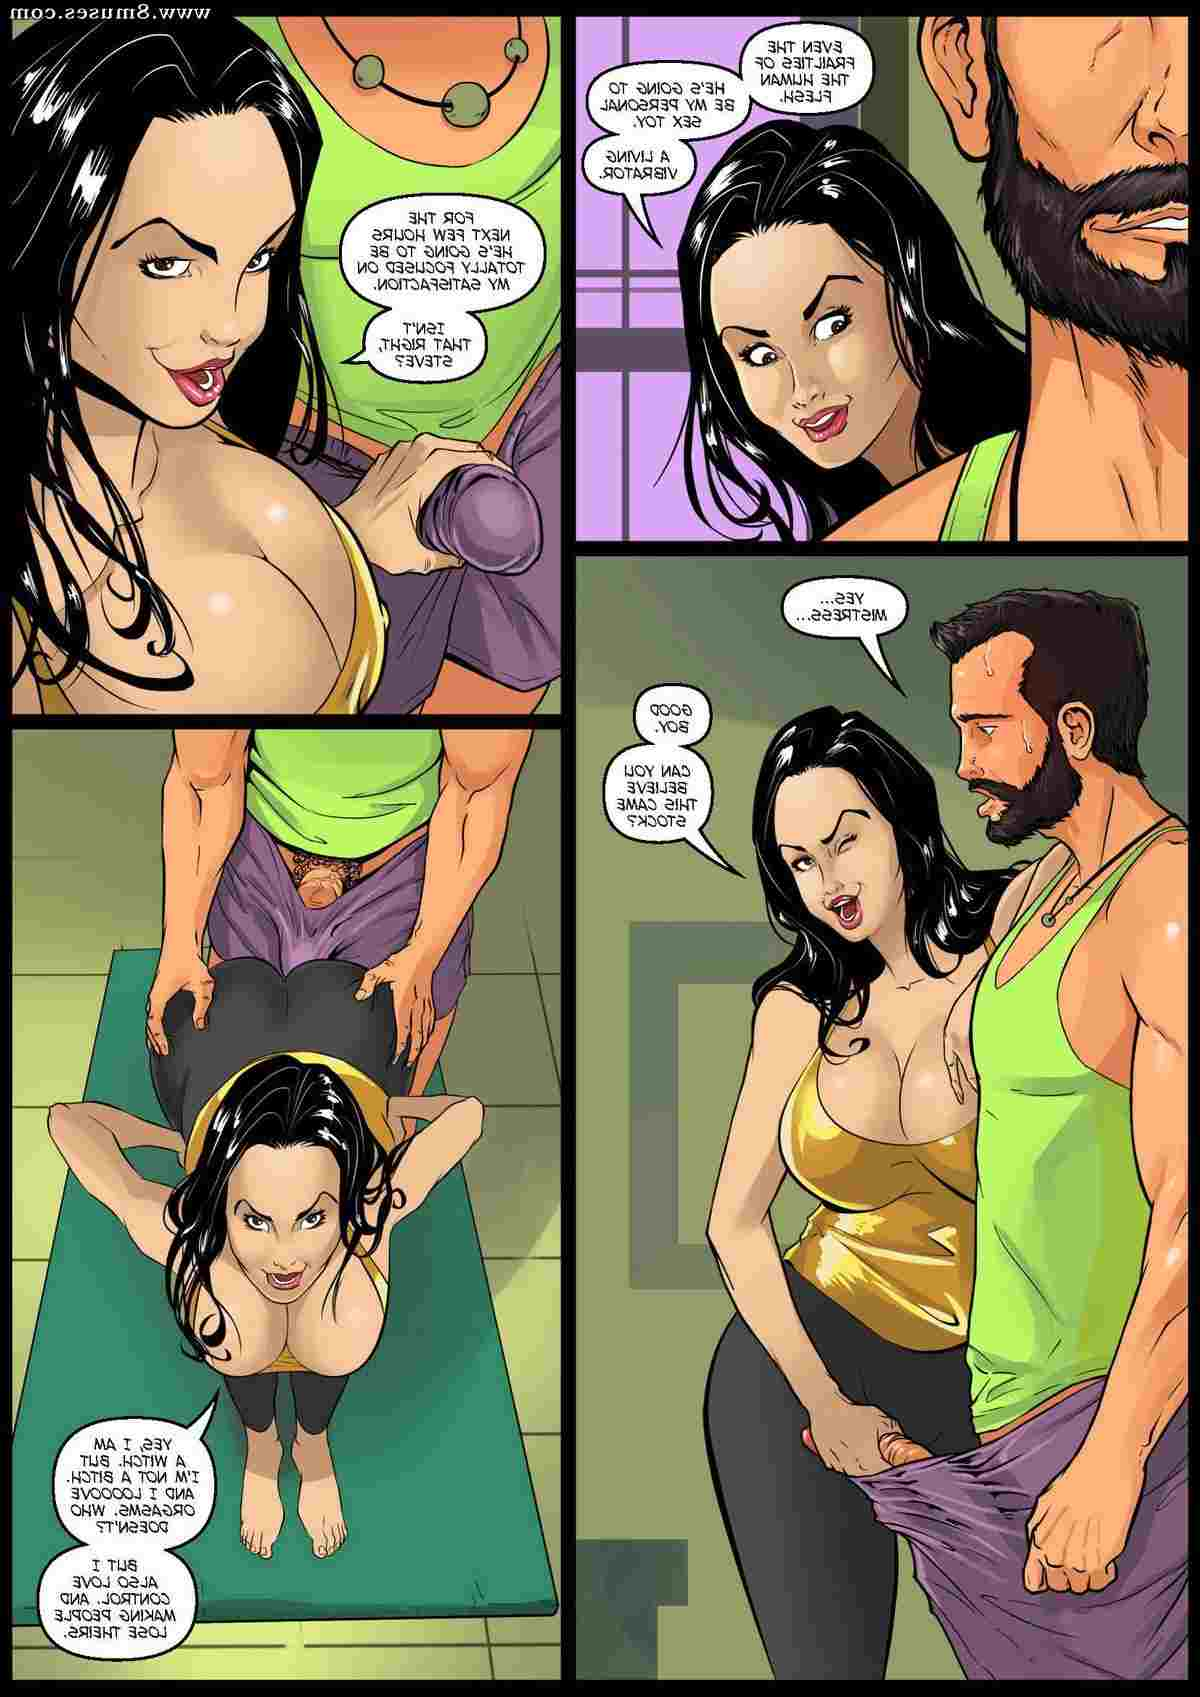 MCC-Comics/Like-Old-Times Like_Old_Times__8muses_-_Sex_and_Porn_Comics_4.jpg